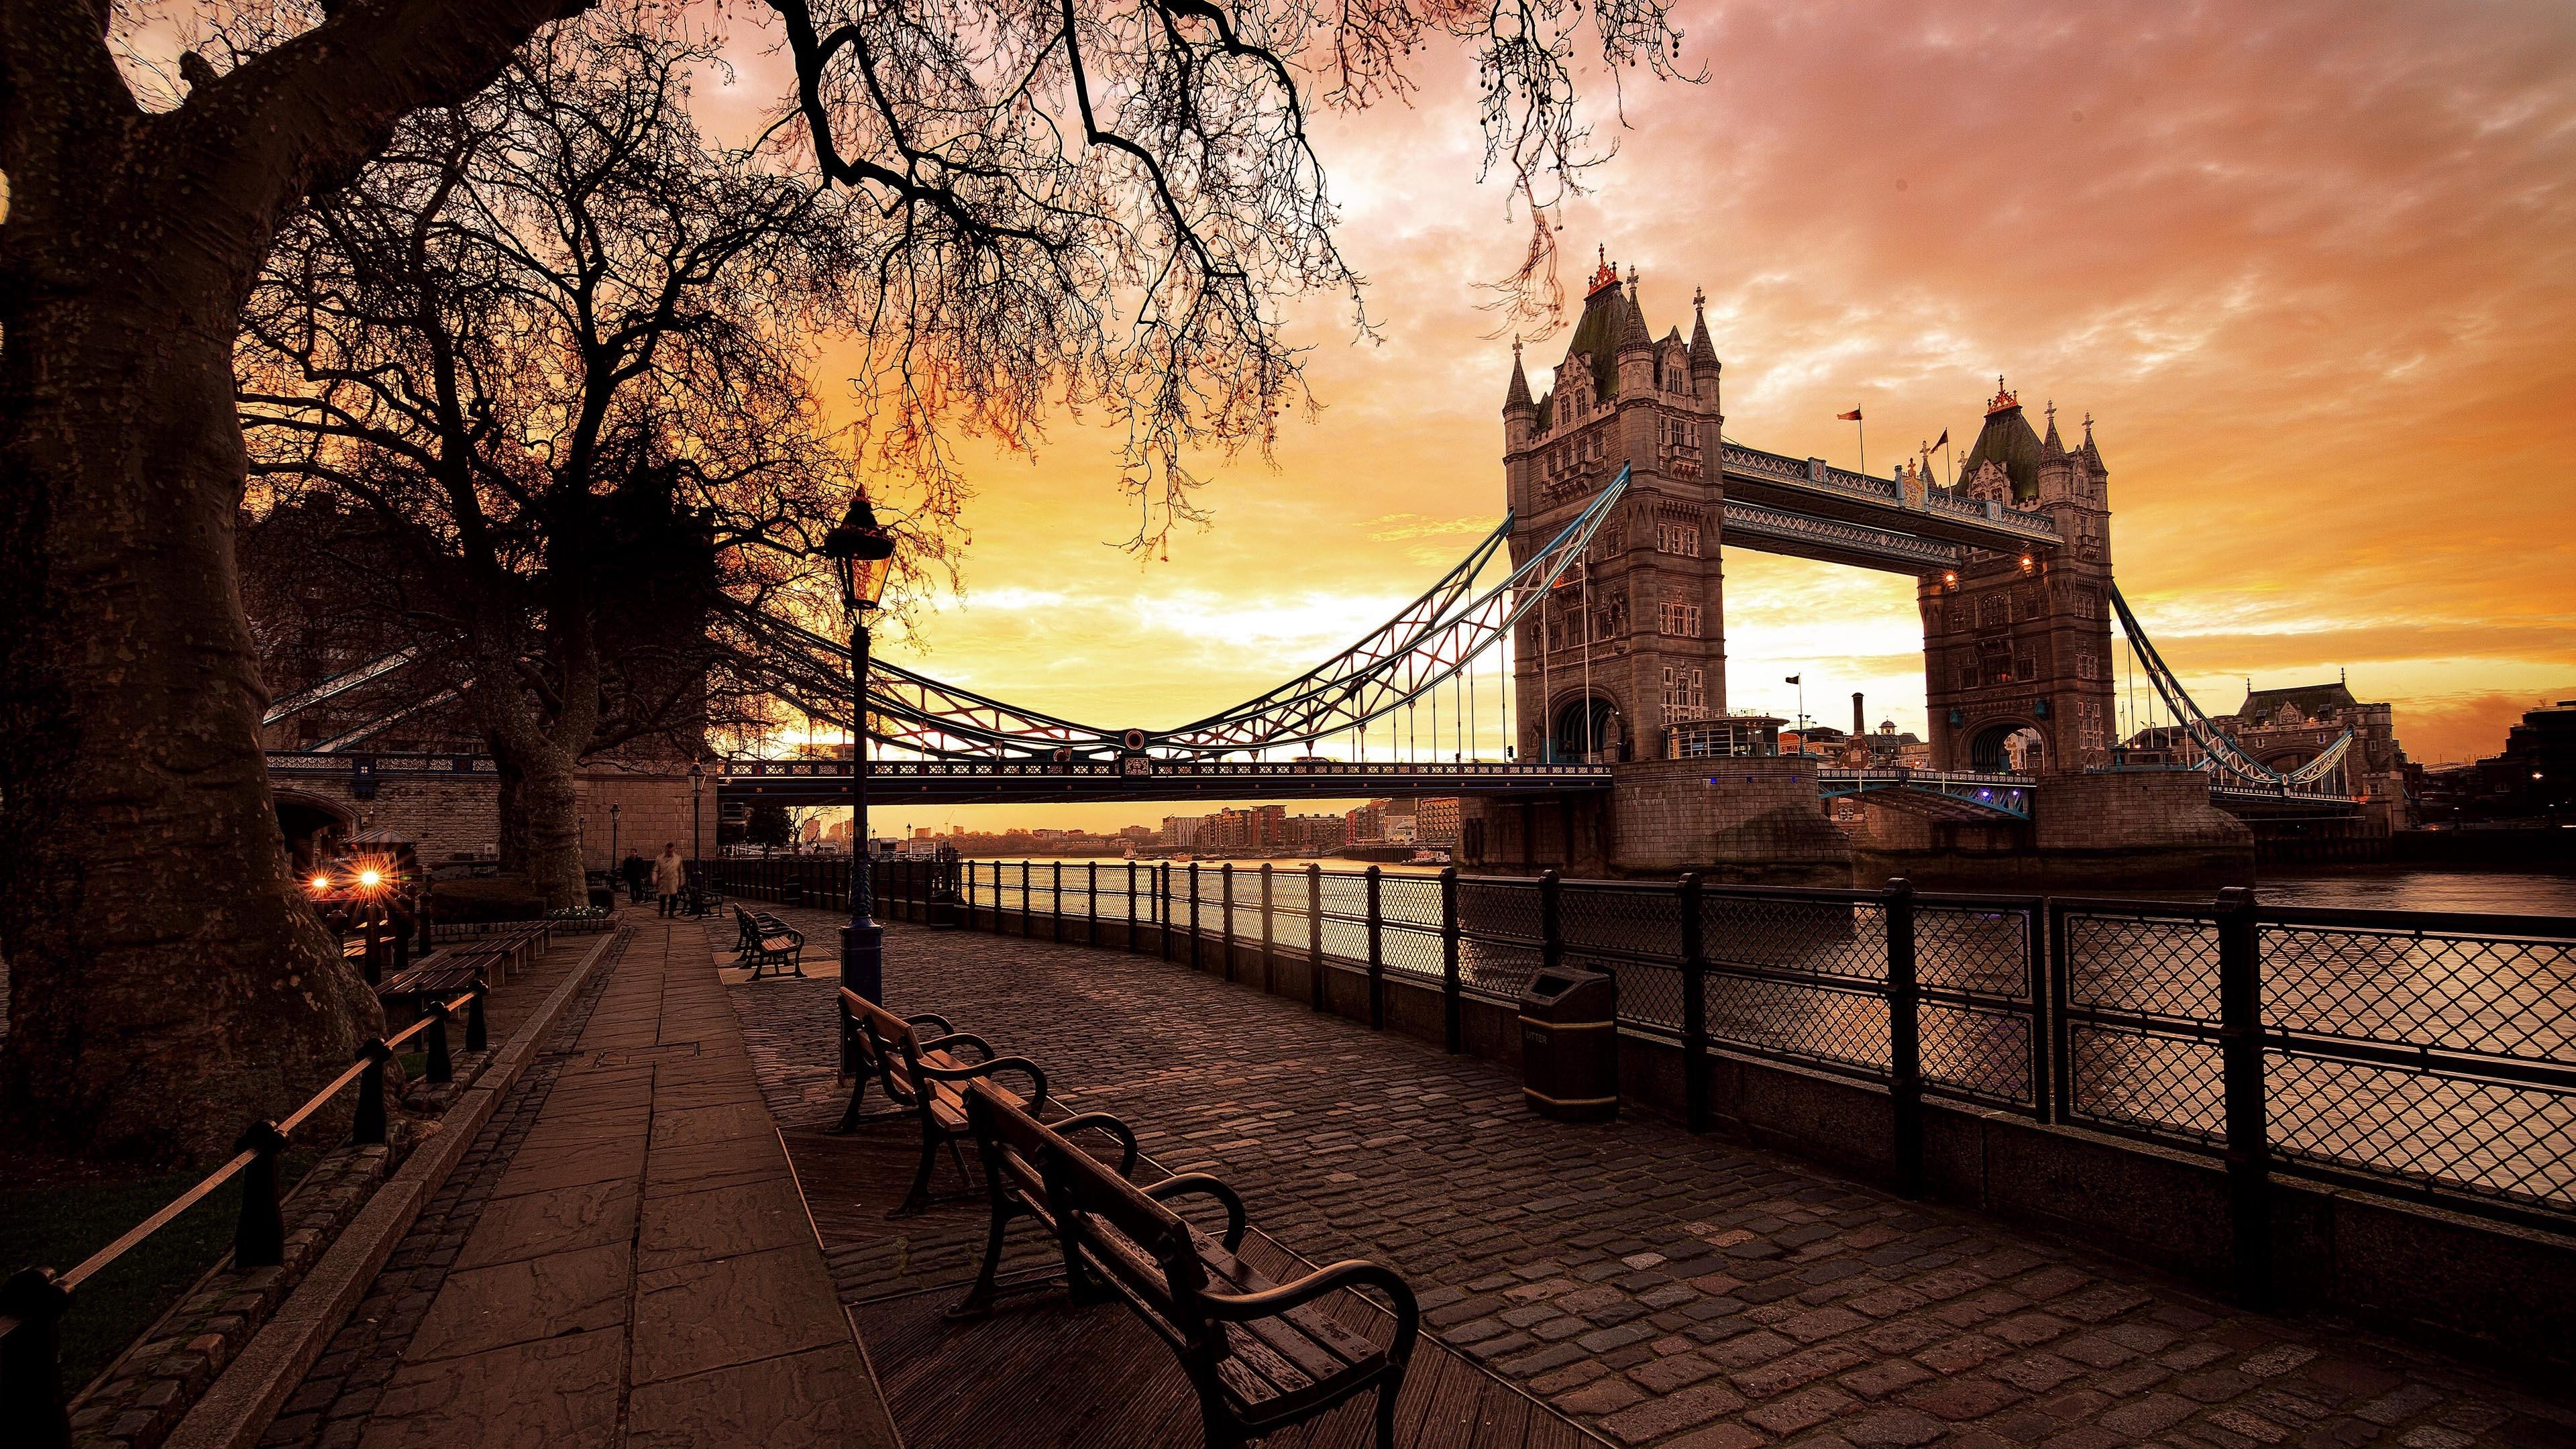 Res: 3840x2160, Tower Bridge Wallpaper | Wallpaper Studio 10 | Tens of thousands HD and  UltraHD wallpapers for Android, Windows and Xbox